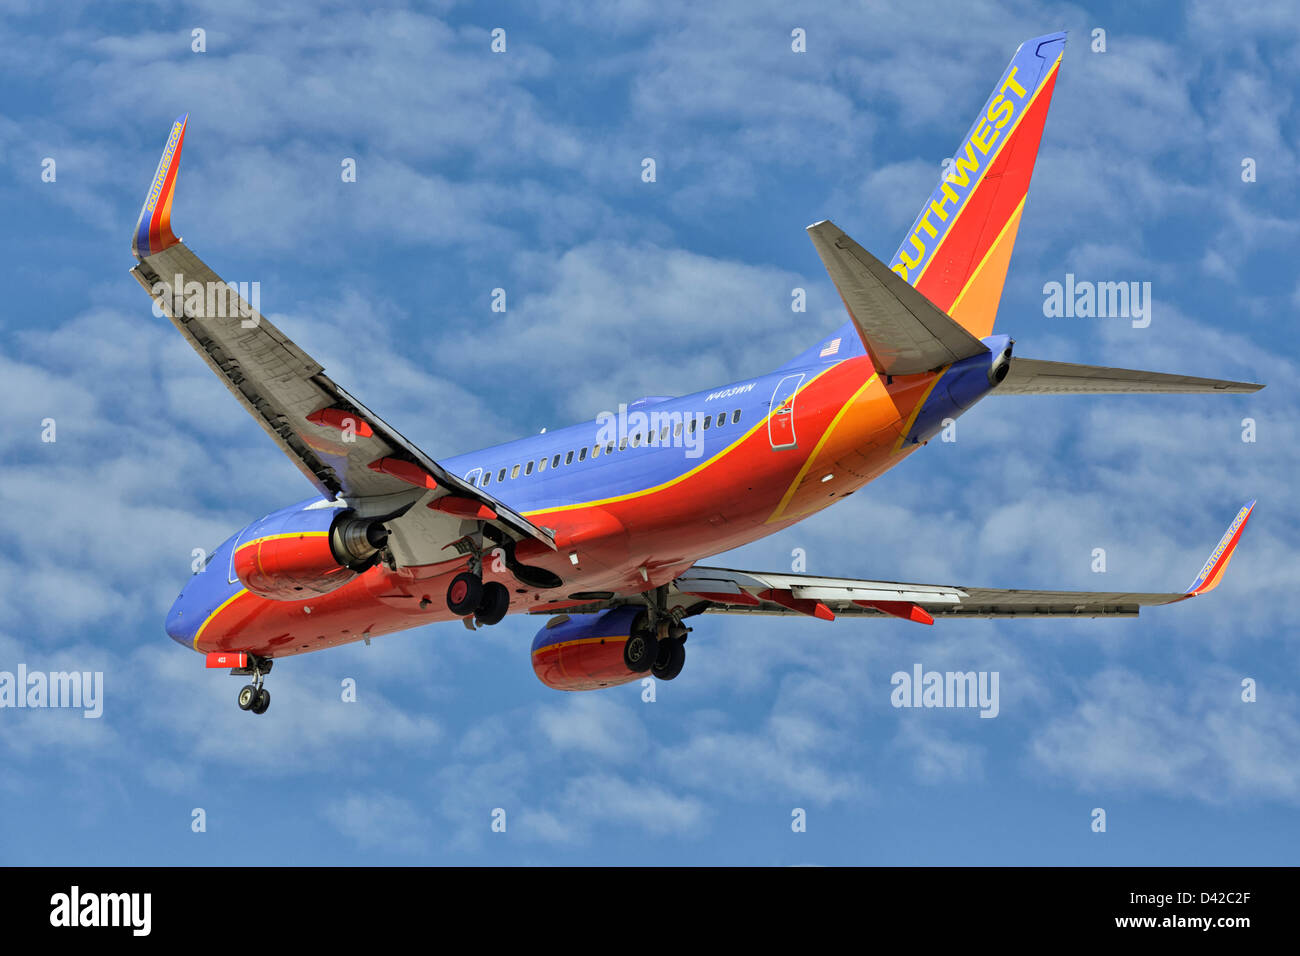 A Boeing 737 of Southwest airllines on final approach - Stock Image